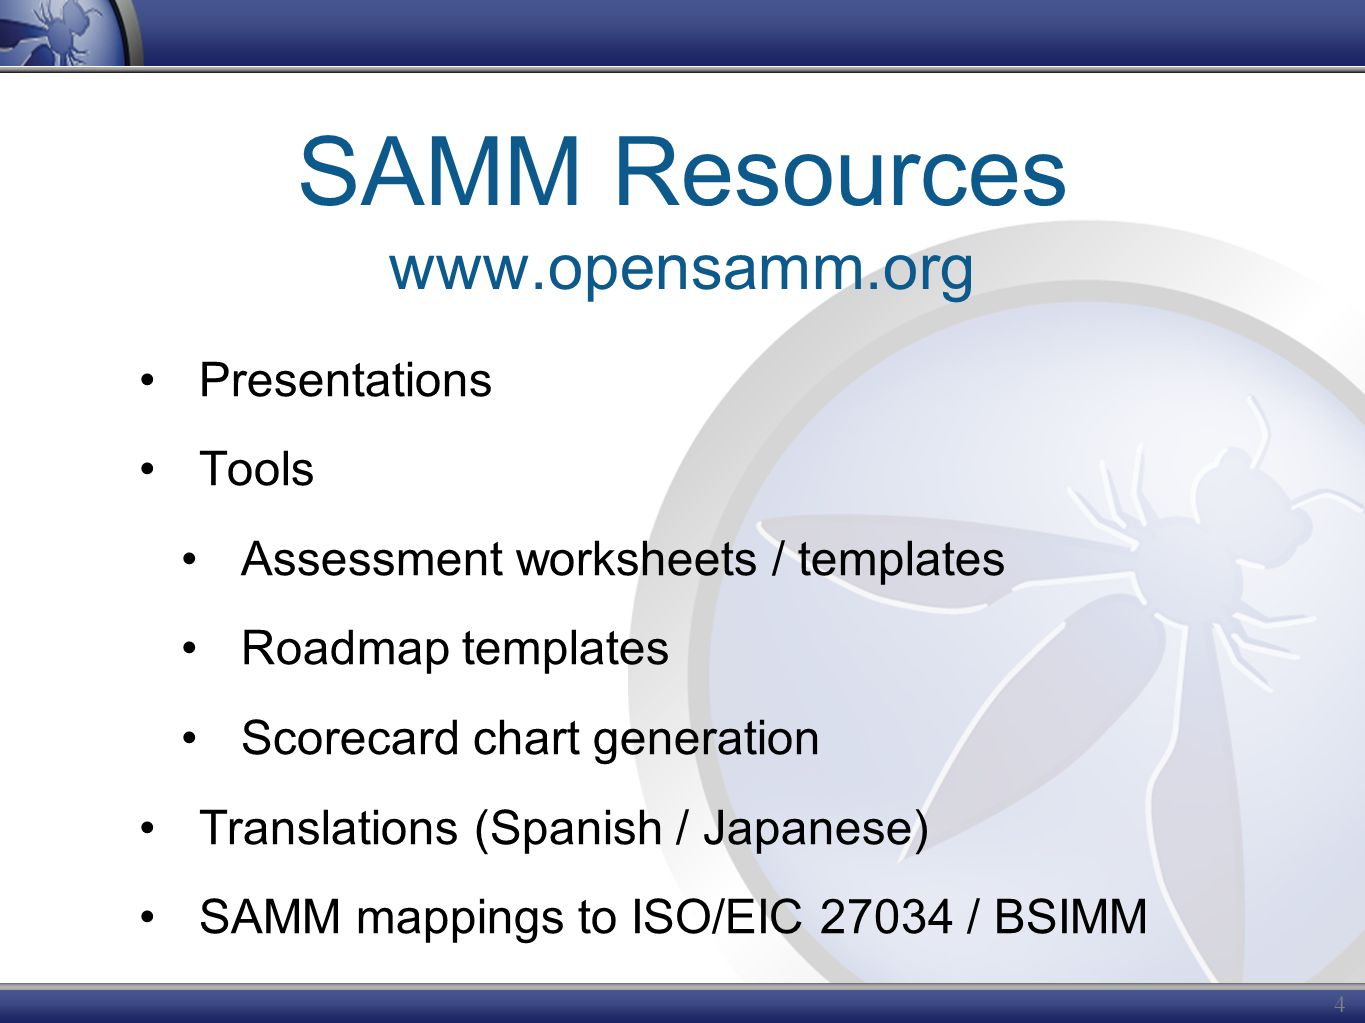 SAMM Resources www.opensamm.org Presentations Tools Assessment worksheets / templates Roadmap templates Scorecard chart generation Translations (Spanish / Japanese) SAMM mappings to ISO/EIC 27034 / BSIMM 43